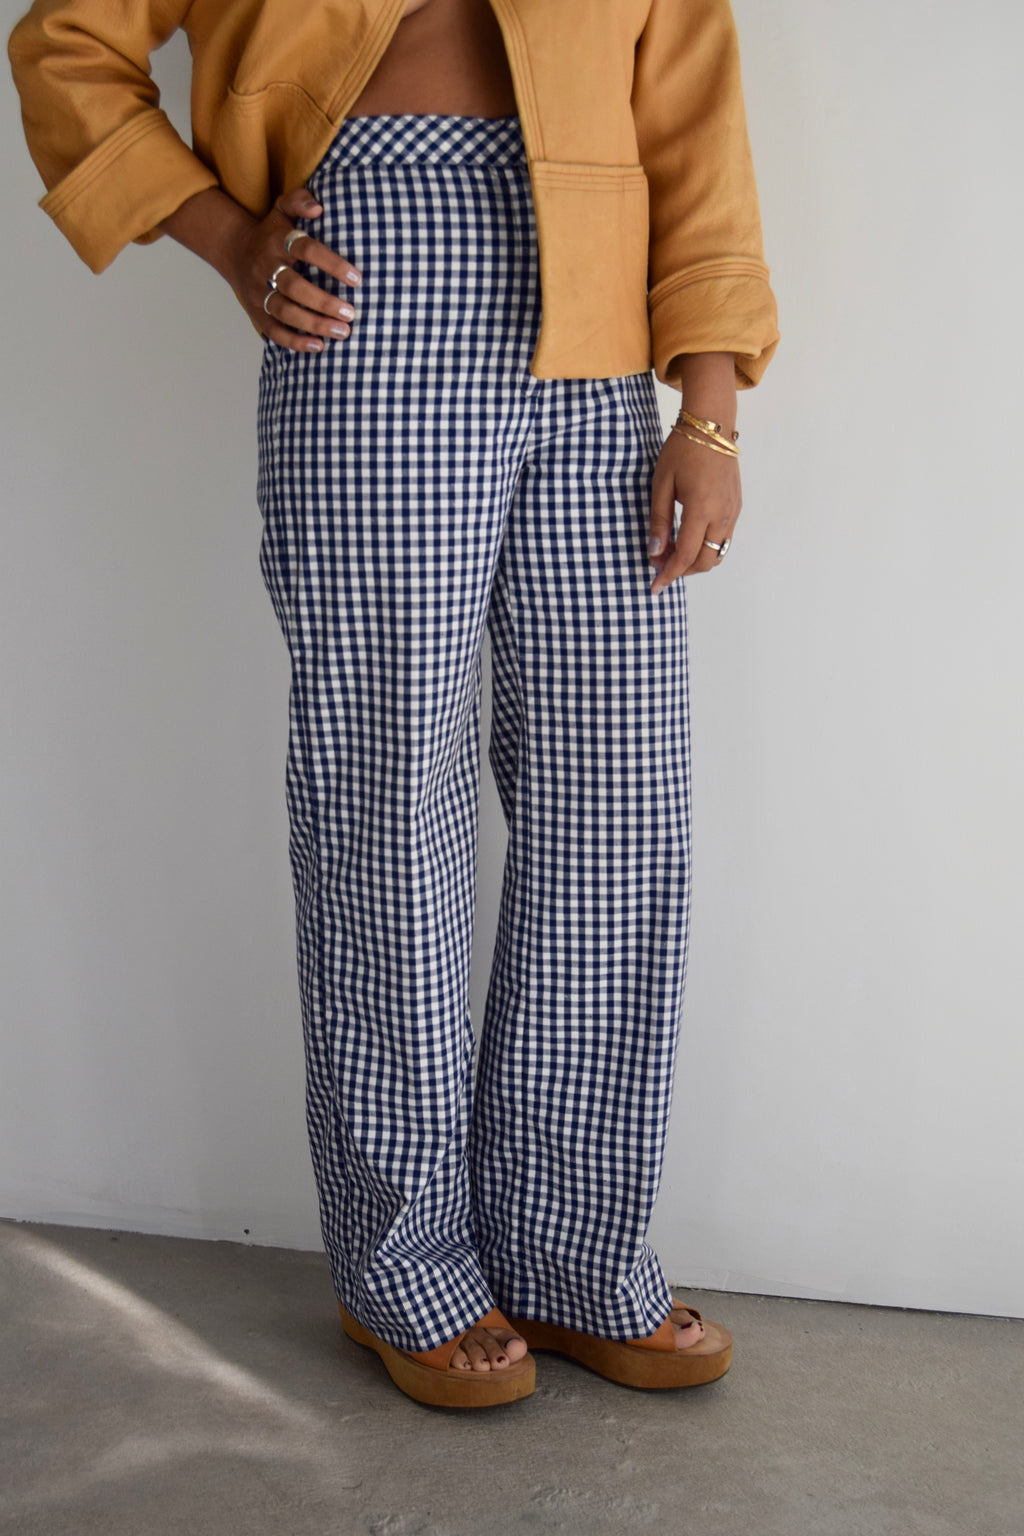 Vintage Gingham Wide Leg Pants FREE SHIPPING TO THE U.S.